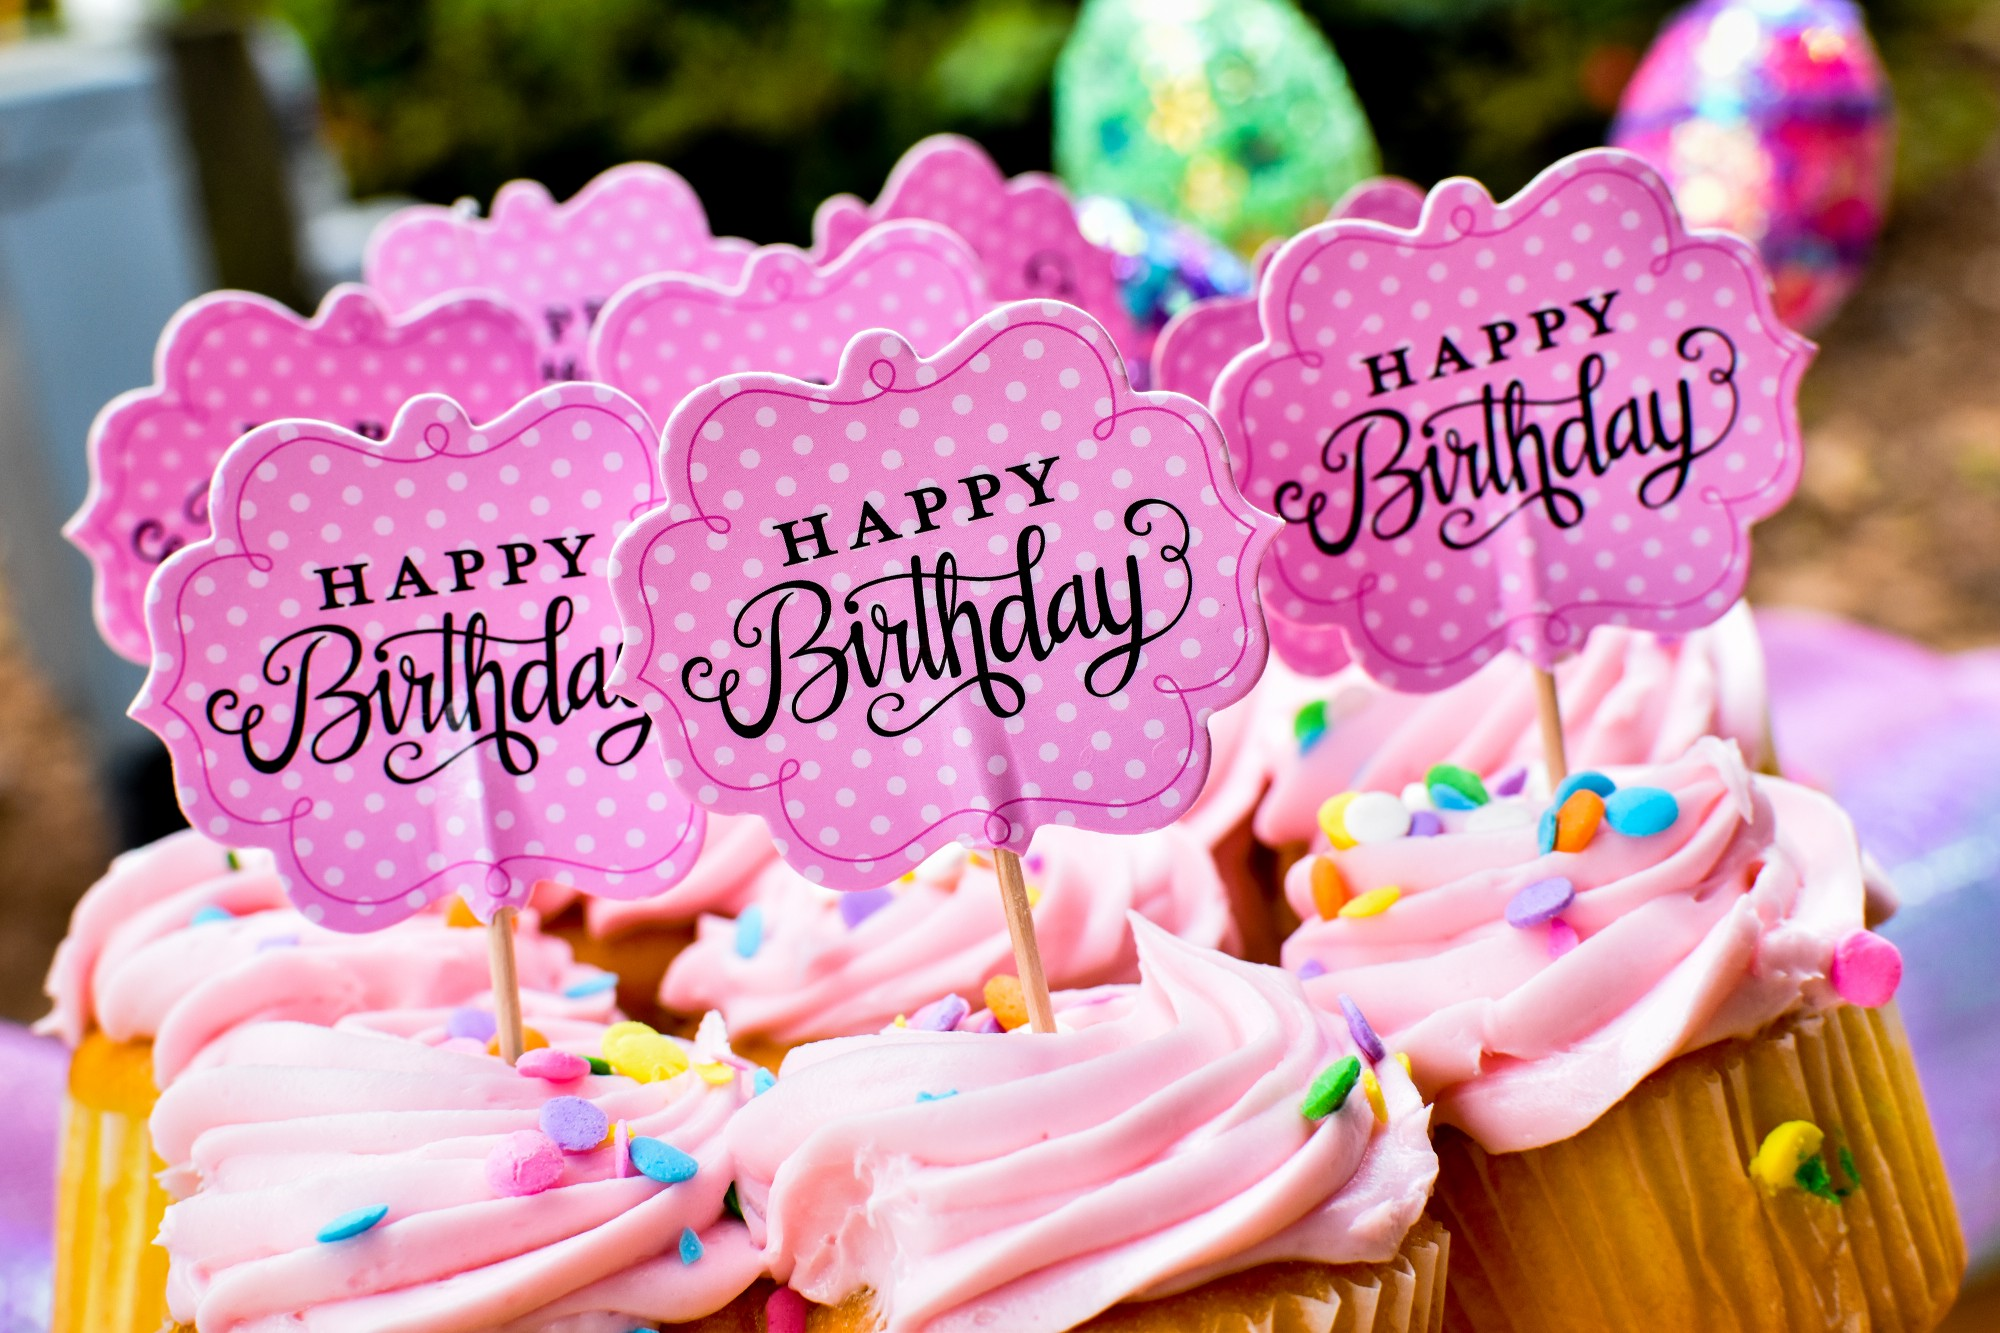 A cluster of pink cupcakes, swirled frosting, a Happy Birthday flag in each, with sprinkles to celebrate increasing your longevity